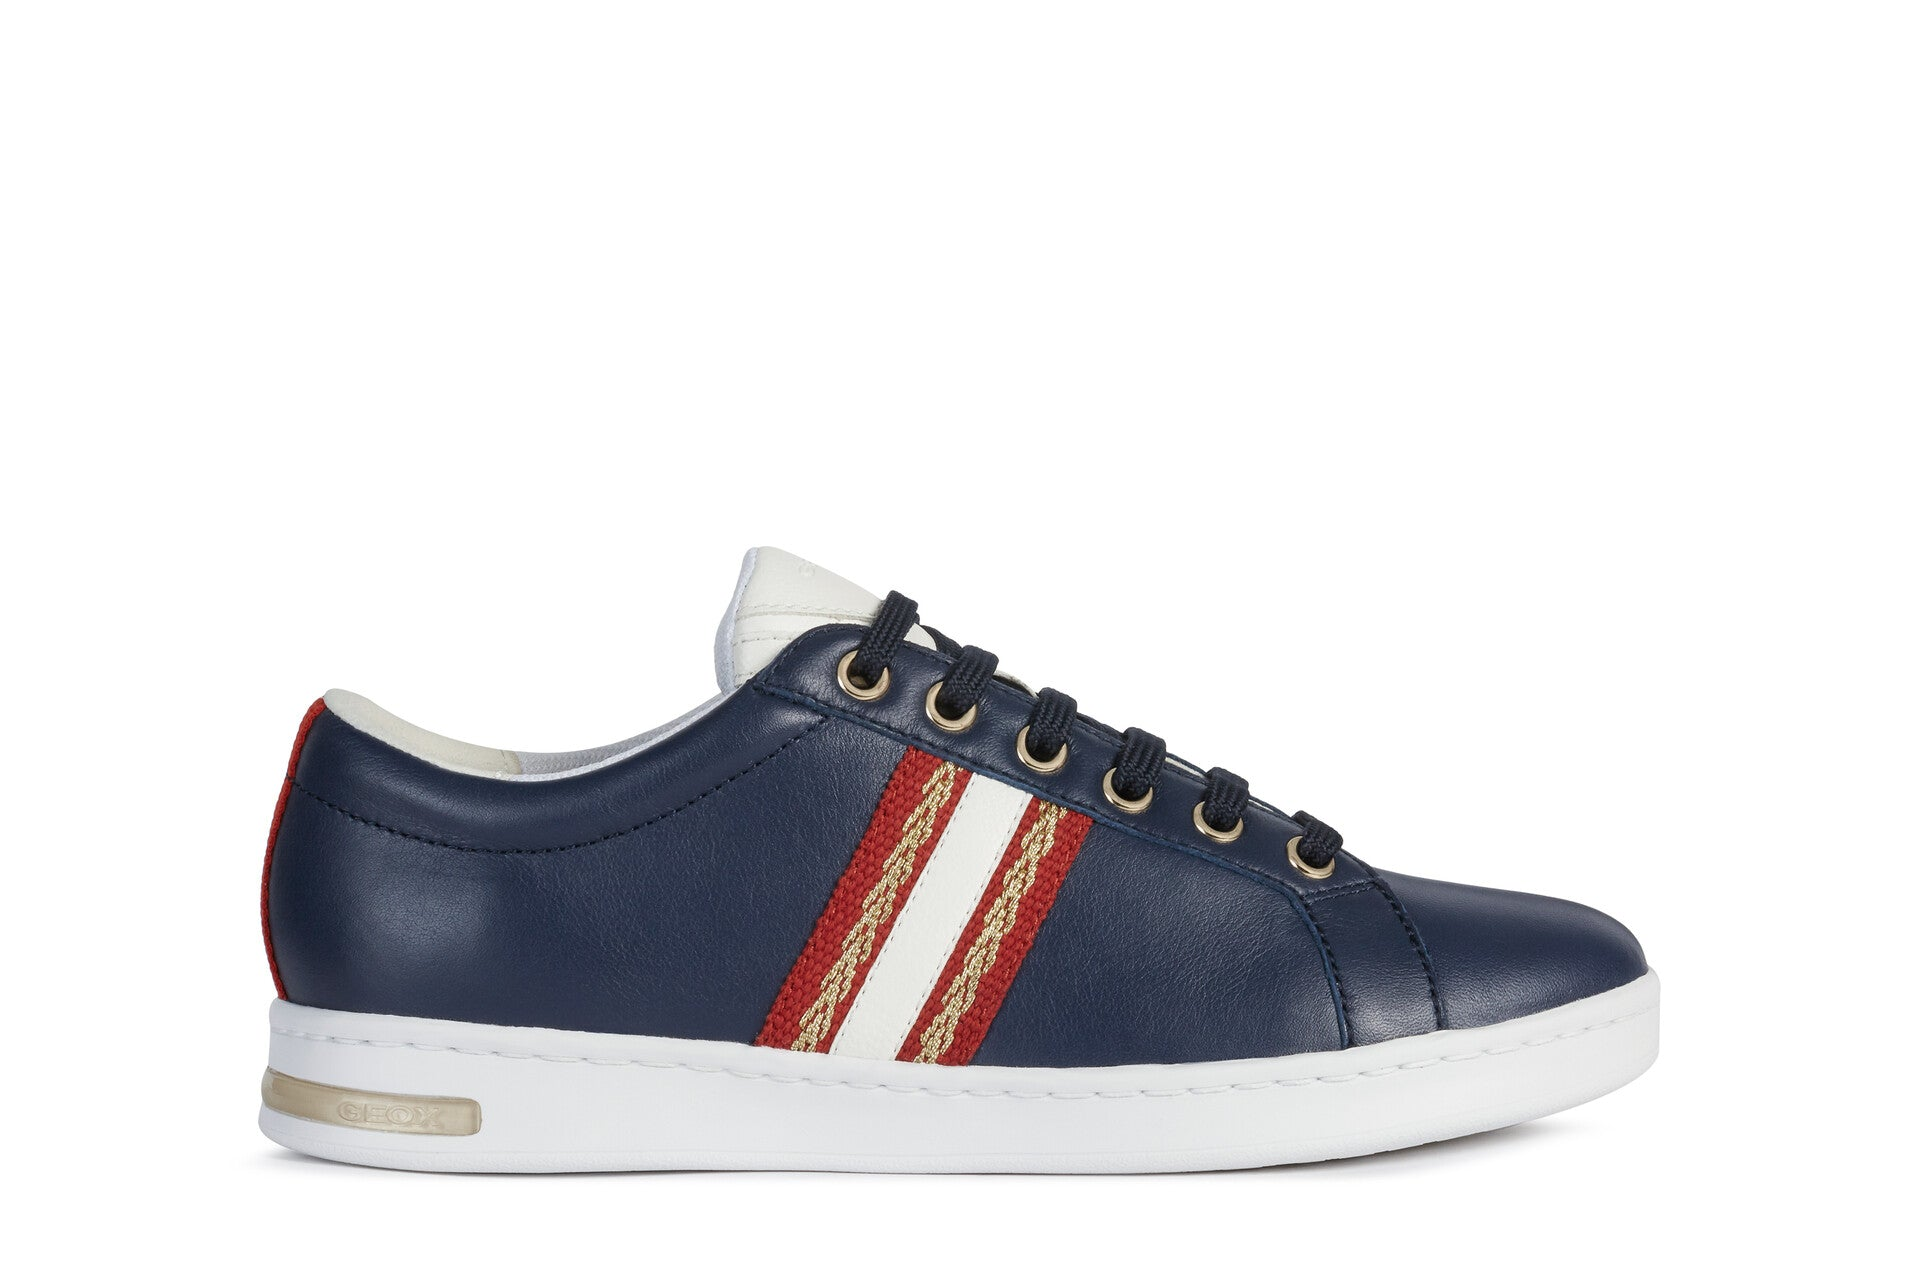 Geox Ladies Jaysen Navy Leather Lace Up Flat Sole Sneaker